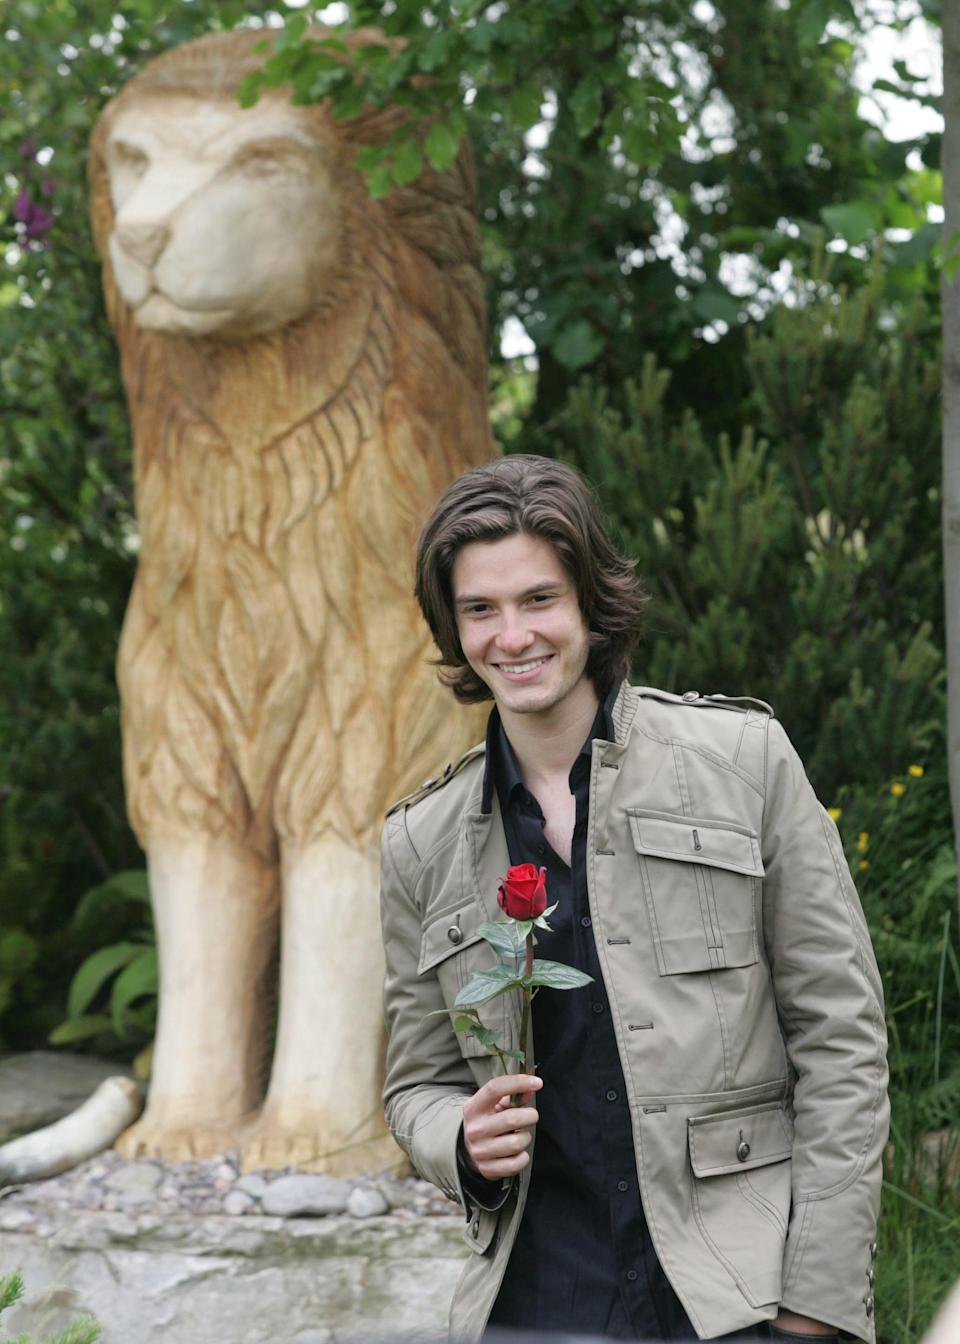 <p>And we shall live happily ever after in Narnia.</p>